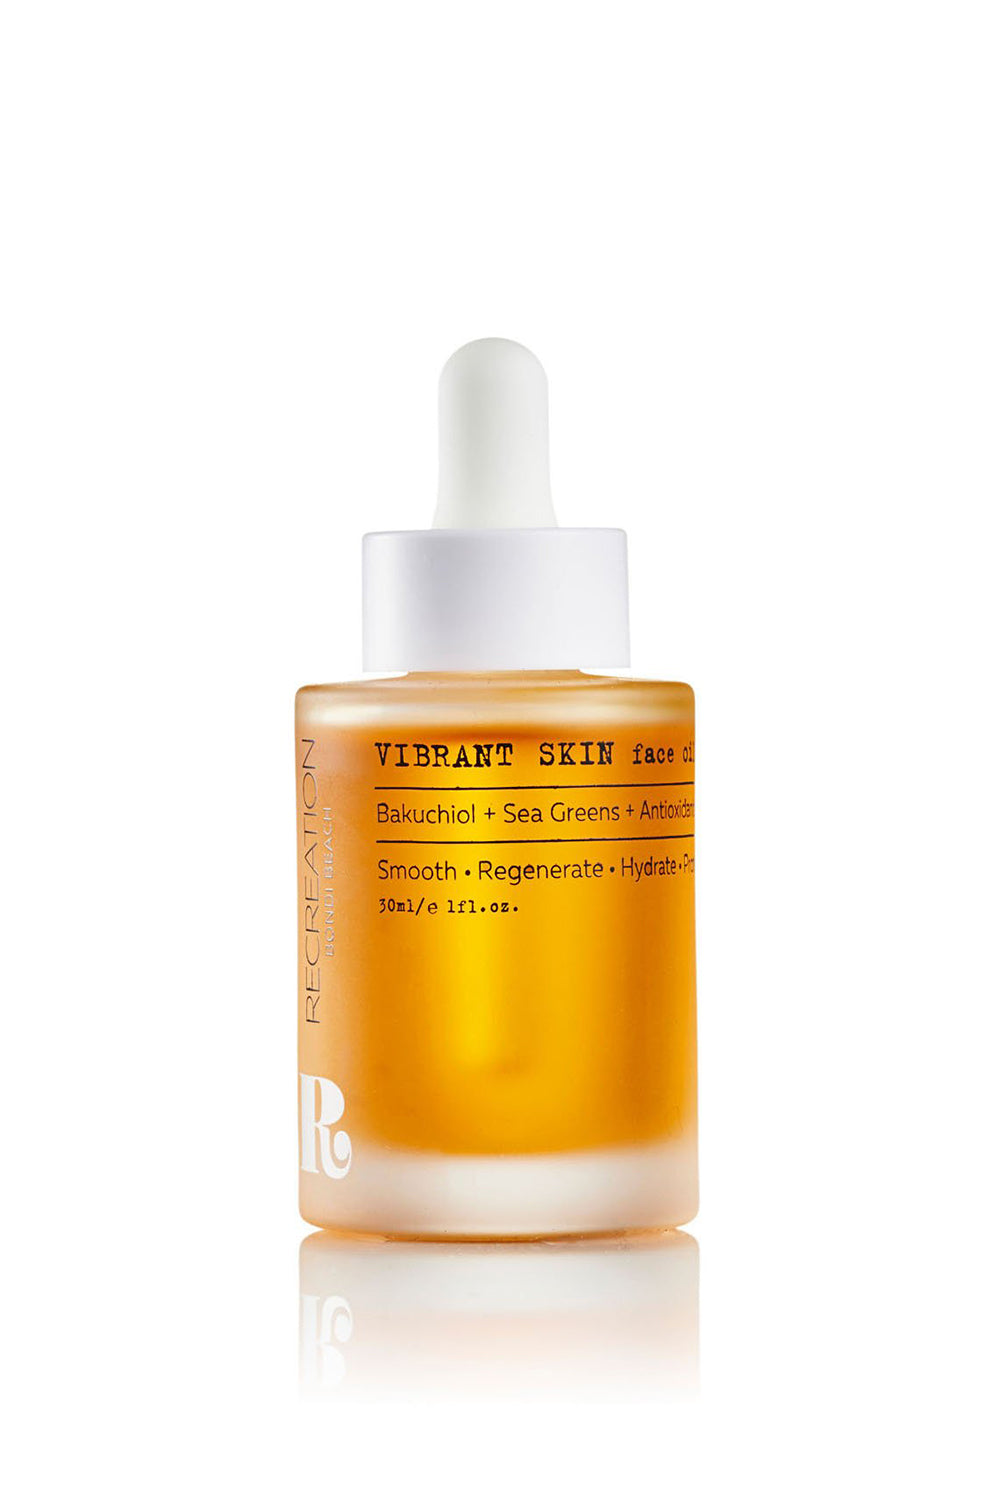 RECREATION BEAUTY - Vibrant Skin Face Oil - Australian Fashion and Accessories Boutique - Faid Store